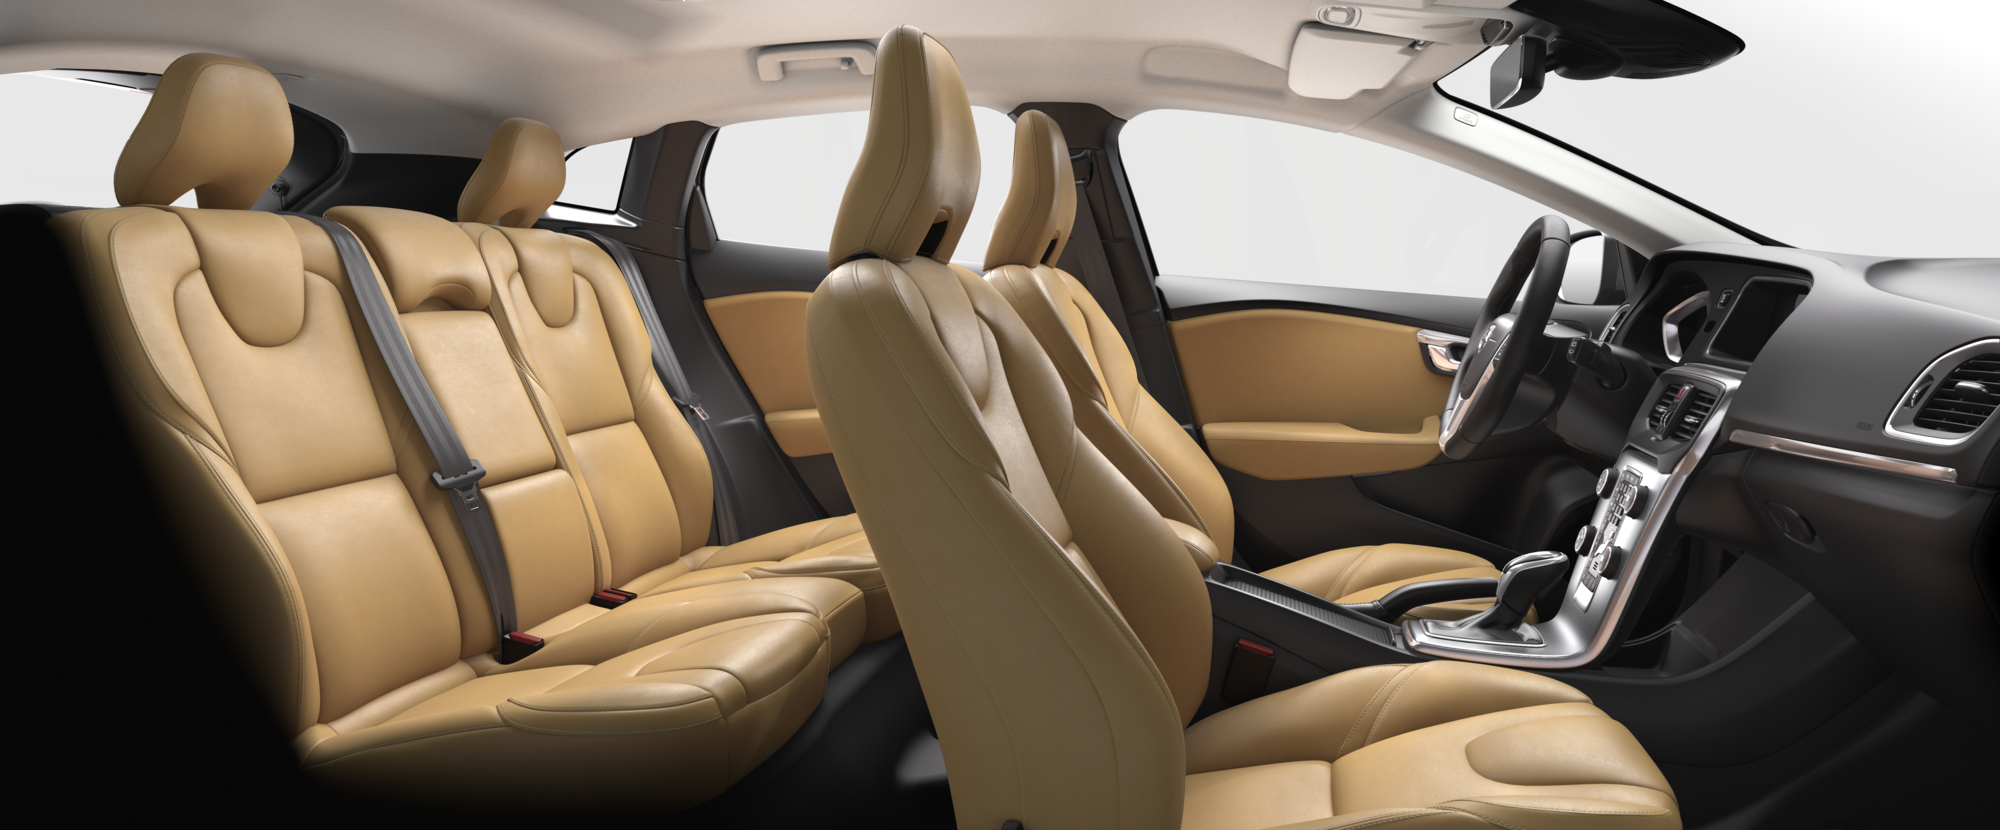 Interior shot of the Volvo V40 with Amber Leather Seats